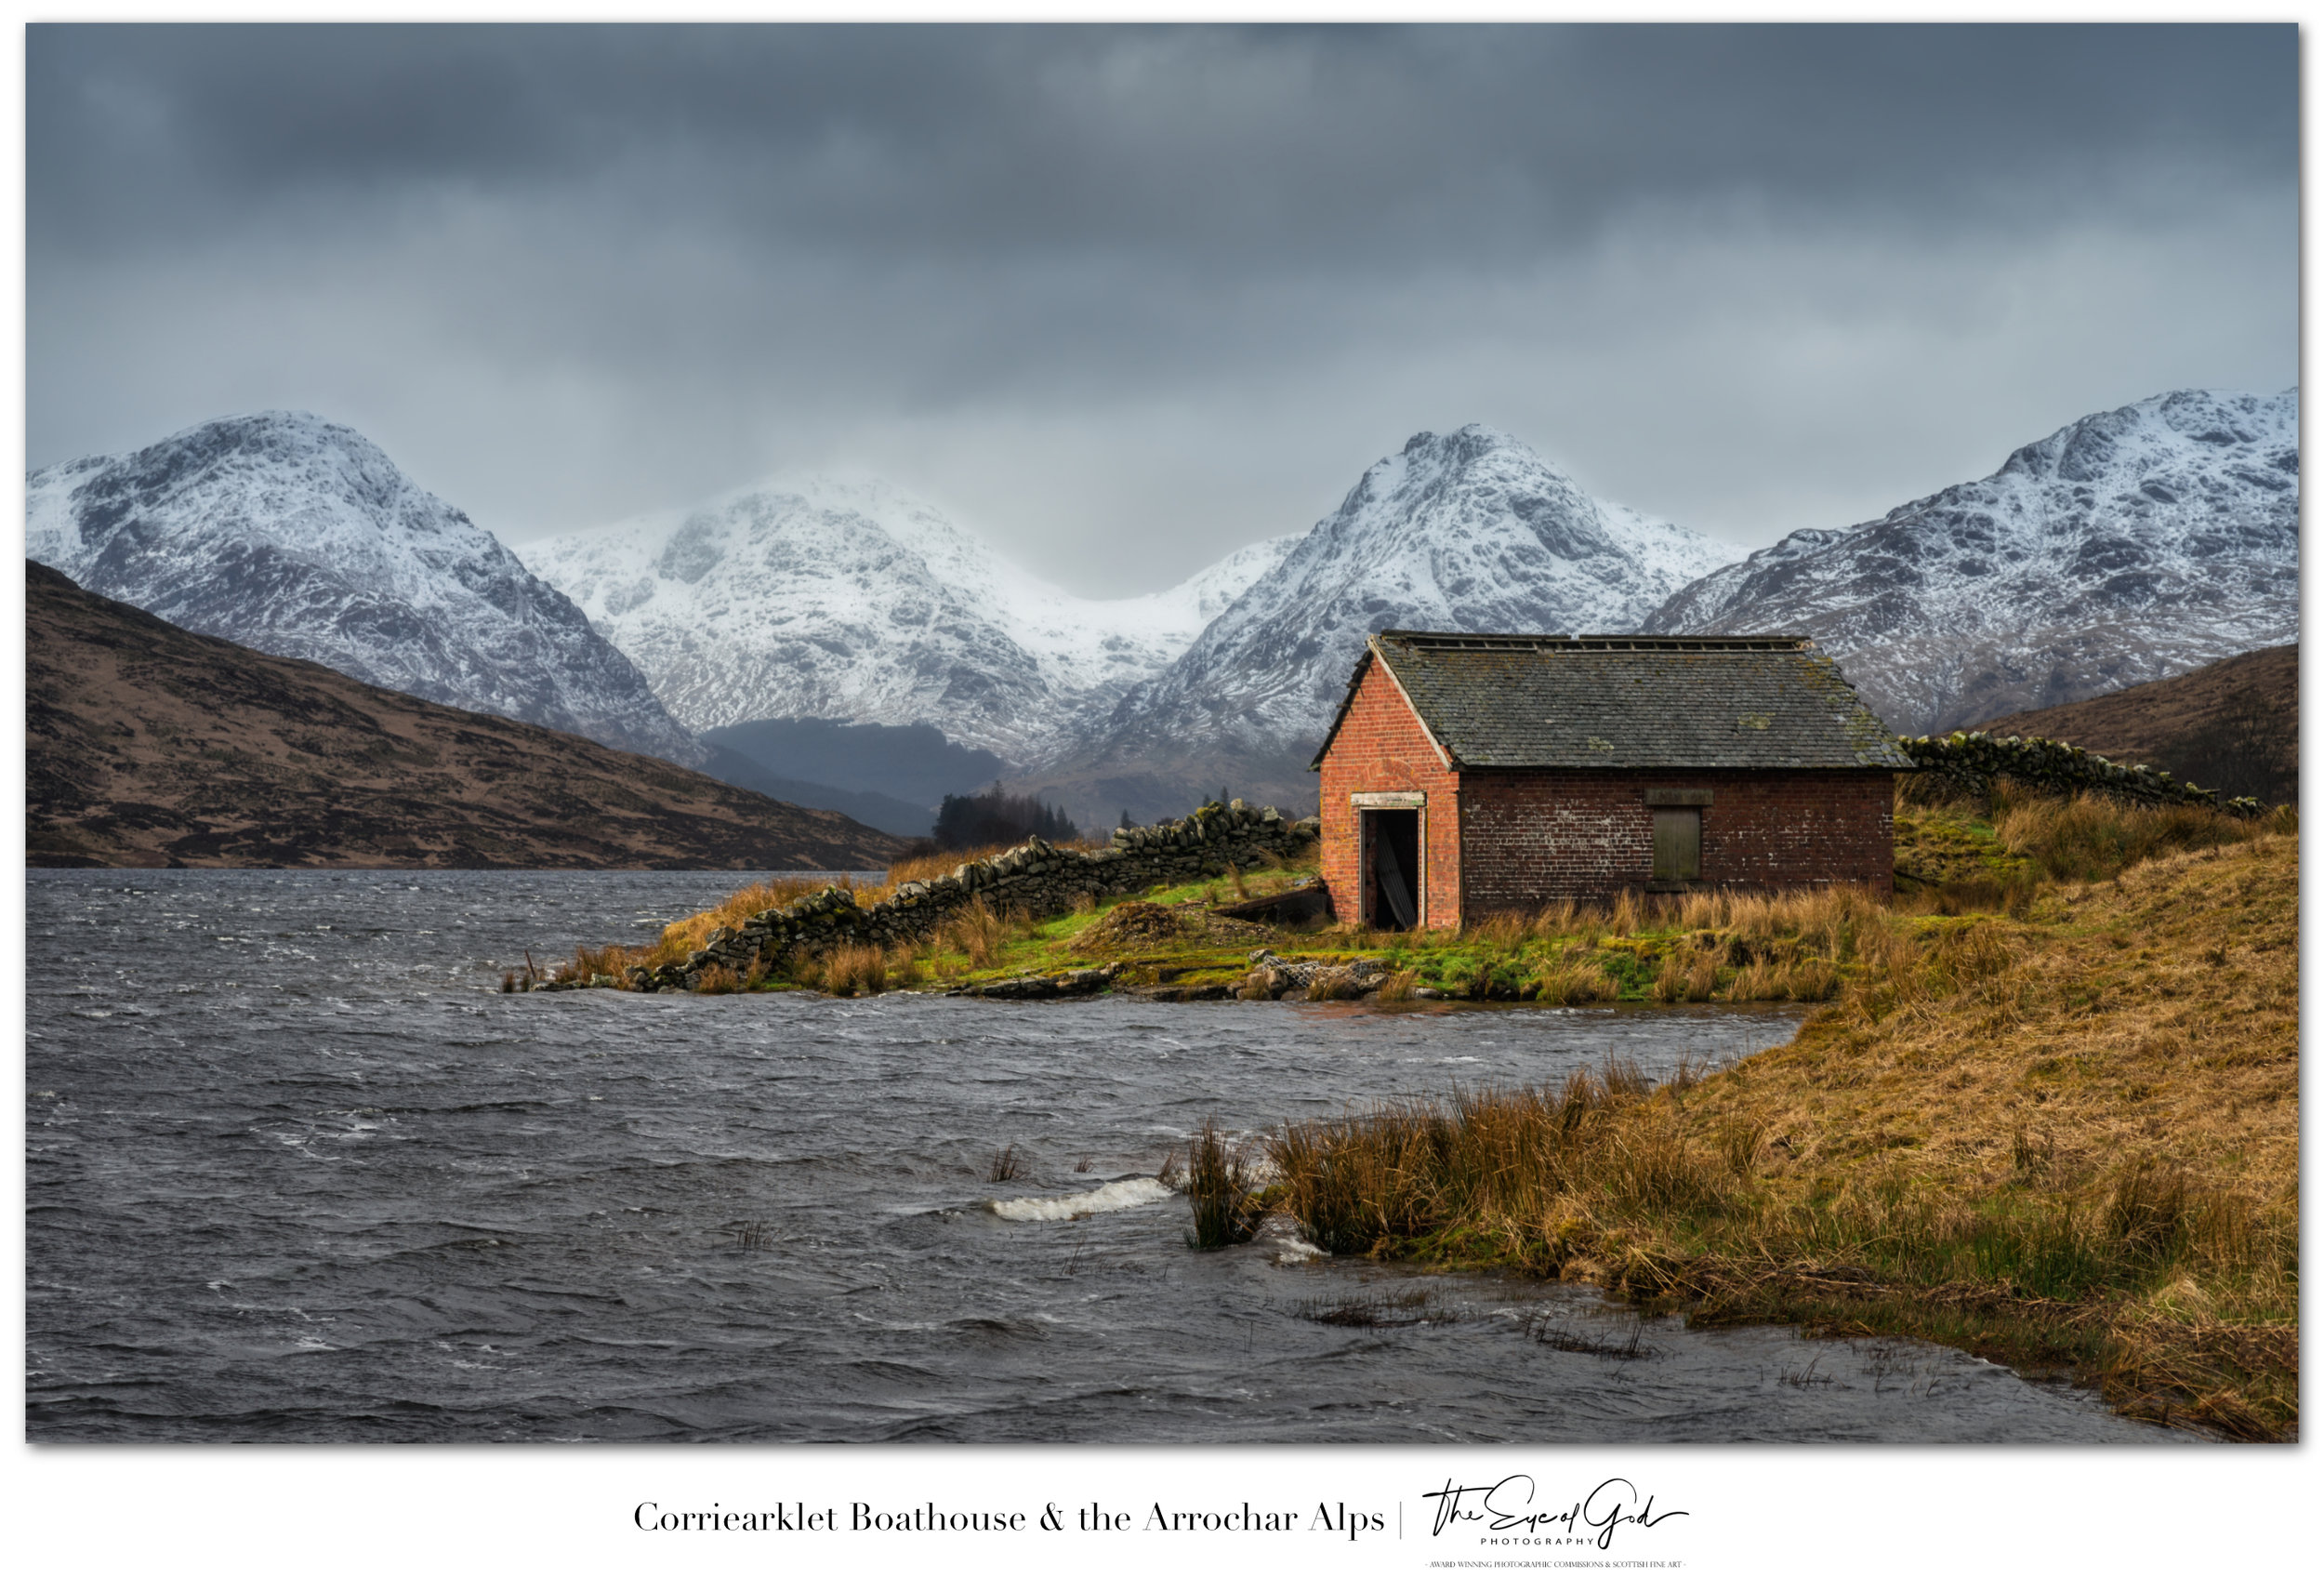 Loch_Arklet_Boathouse_Arrochar_Alps_Scott_Wanstall